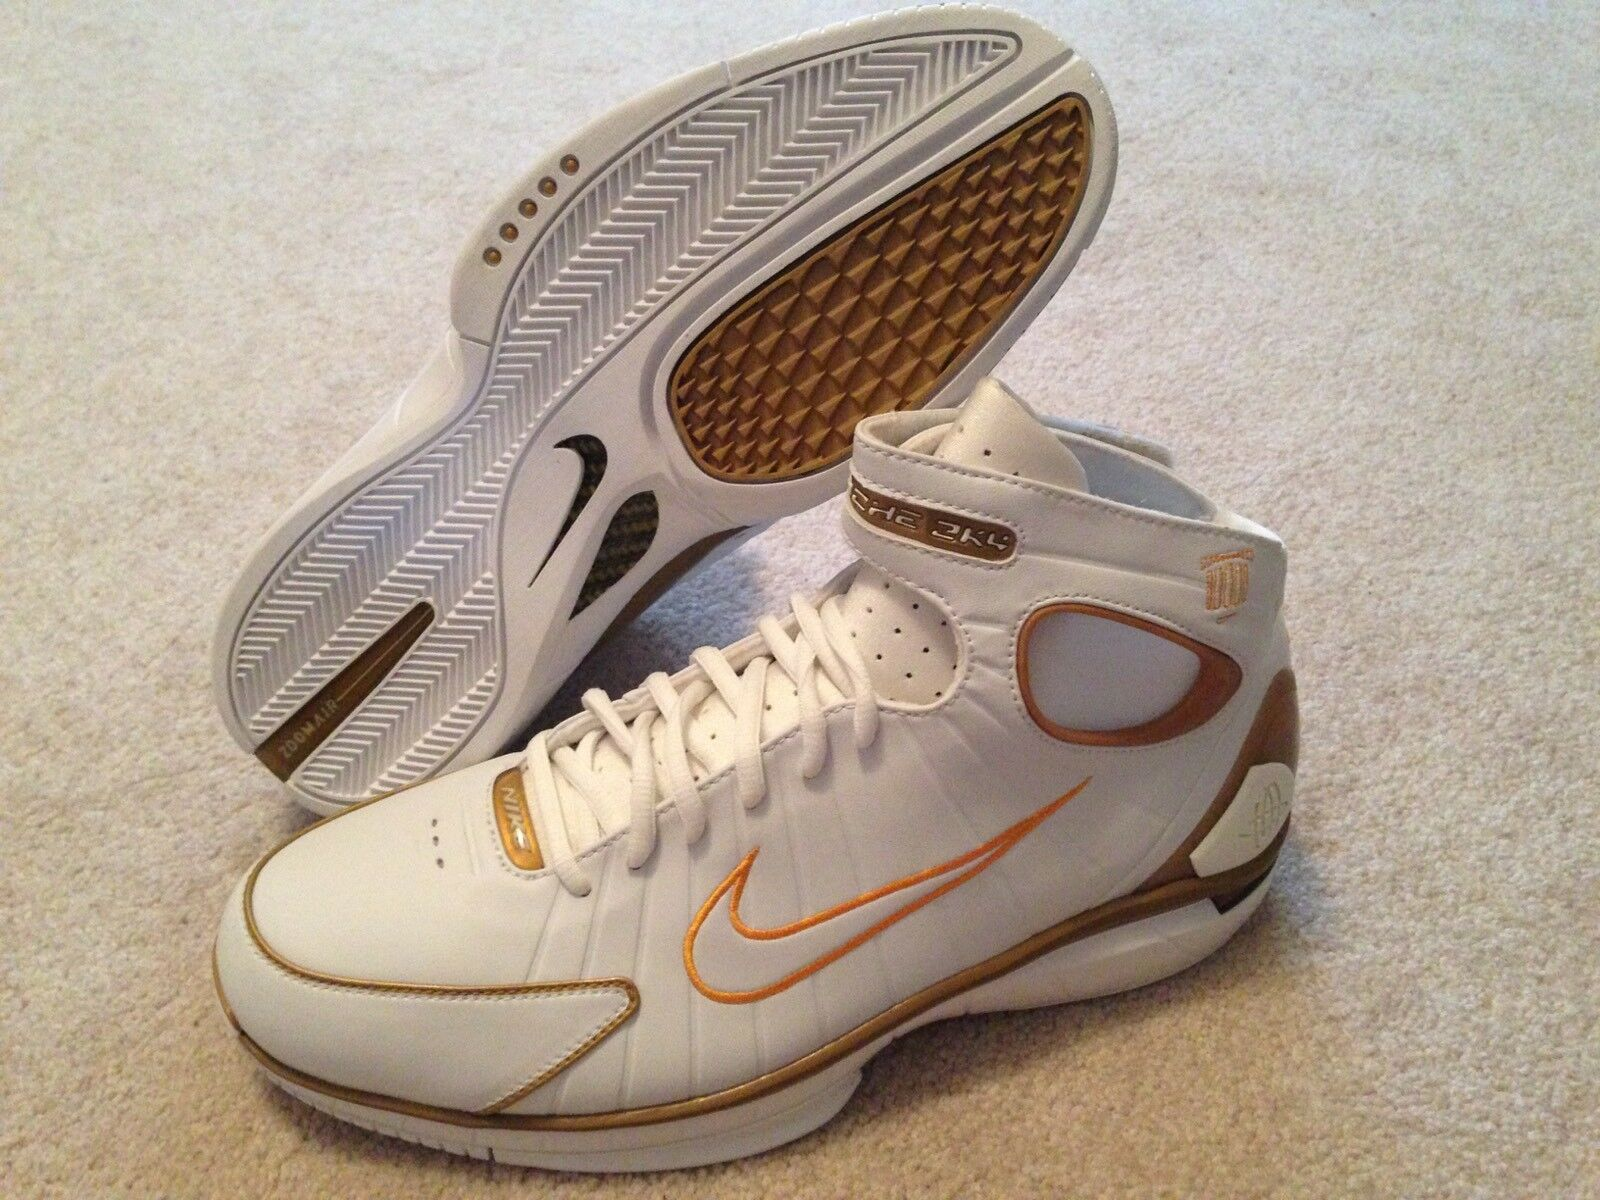 Nike Huarache 2K4 Kobe Bryant Olympic PE Sz 12 Rare Promo Sample Mamba Day Special limited time